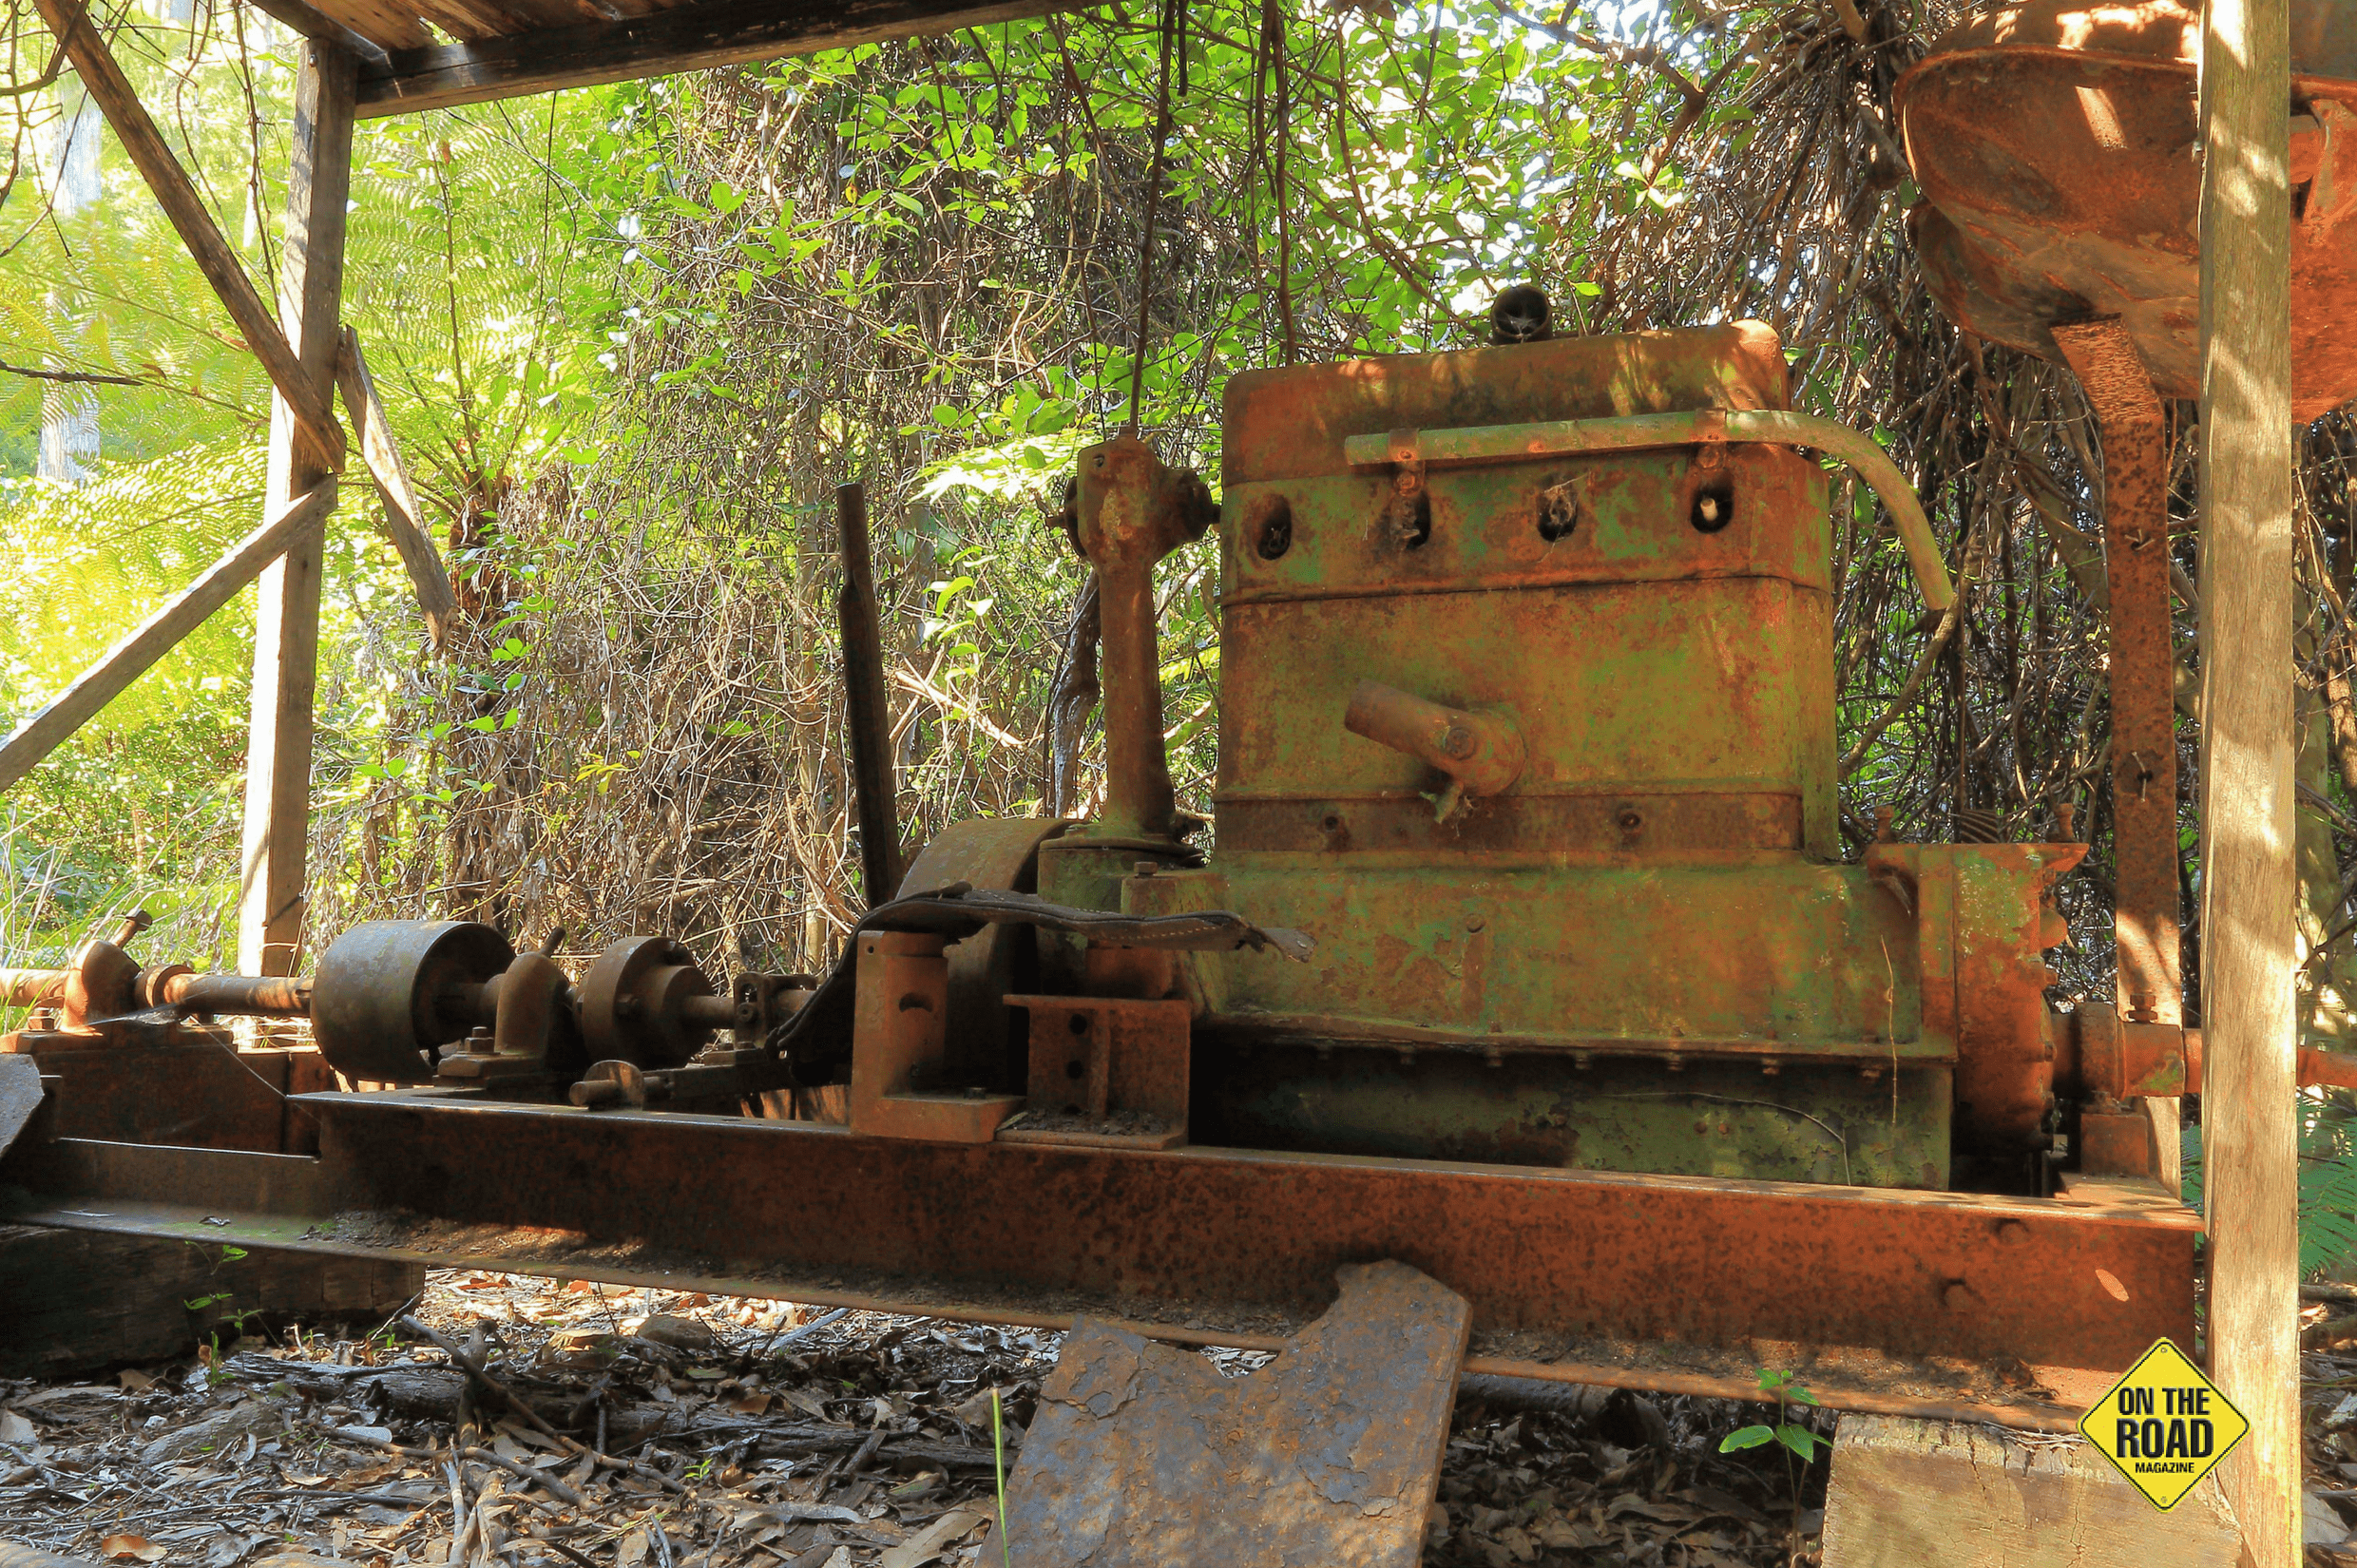 Mining relics at Comans Mine